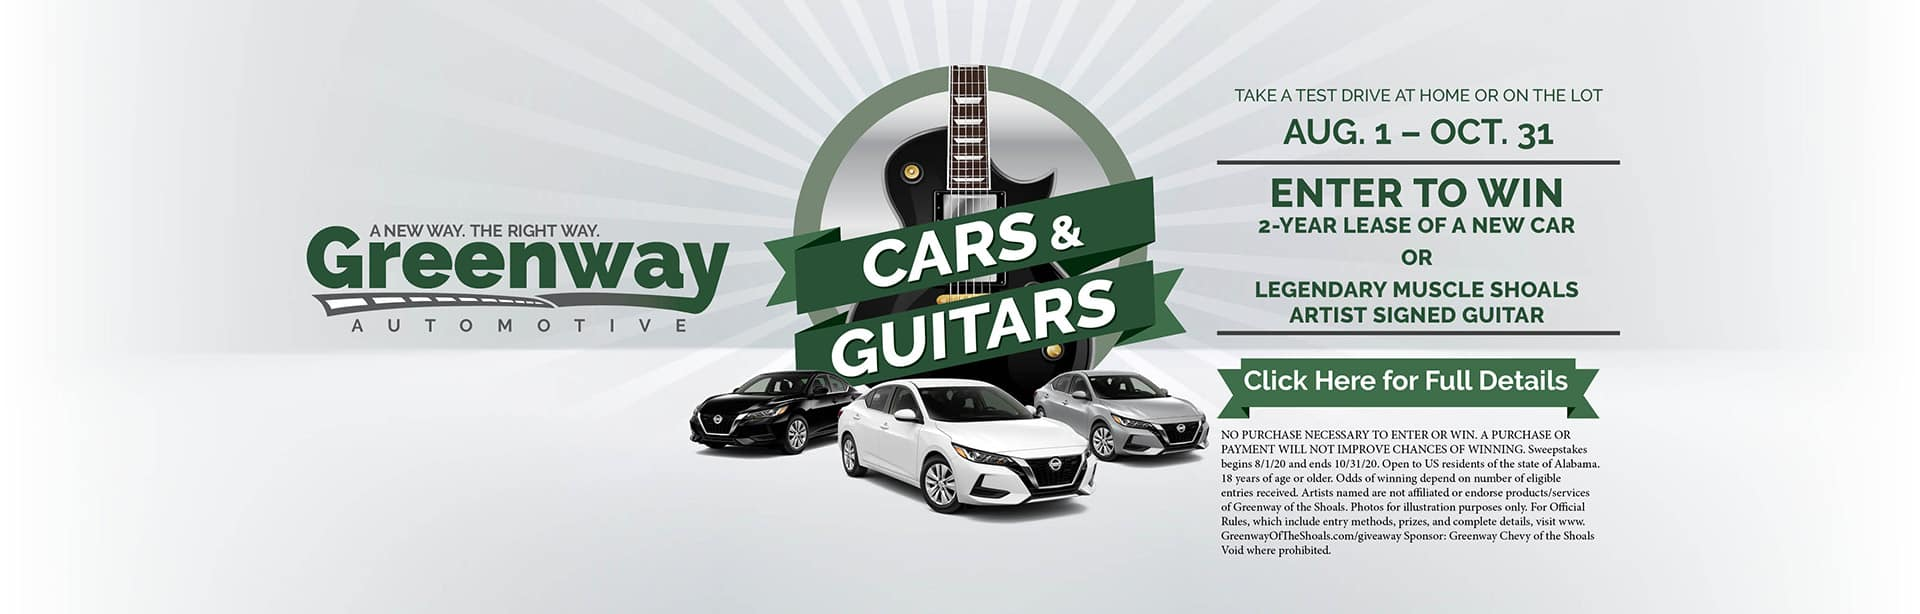 cars and guitars